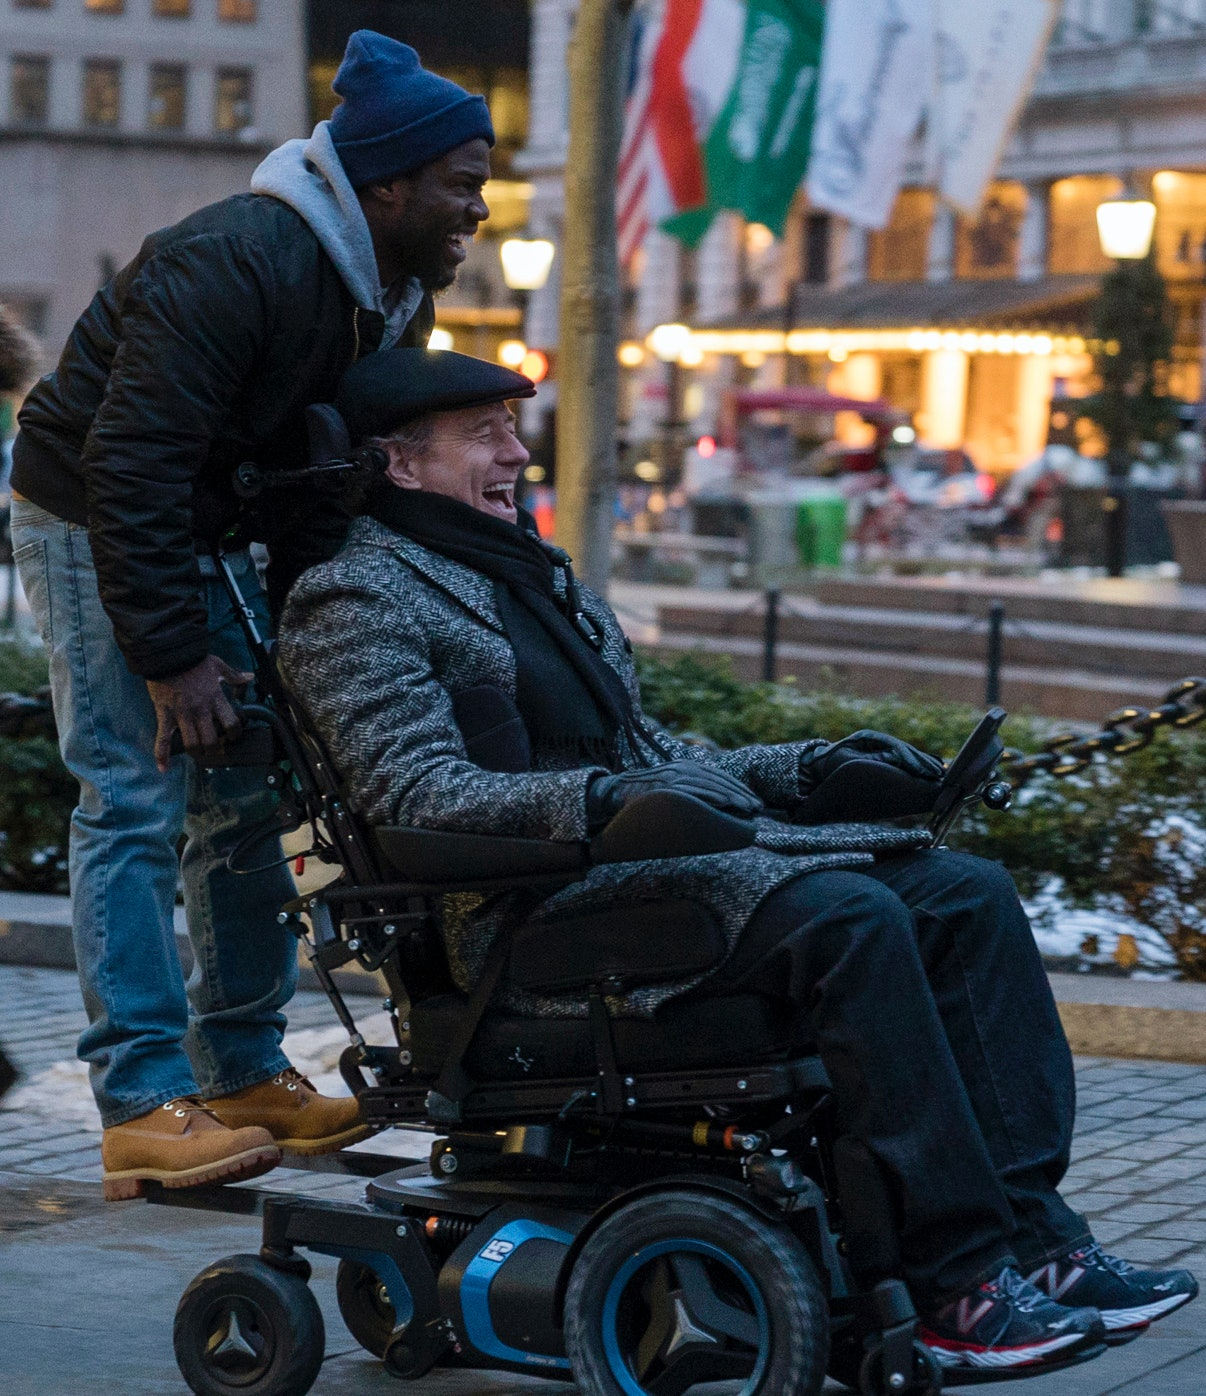 Is 'The Upside' Based On A True Story? The New Feel-Good